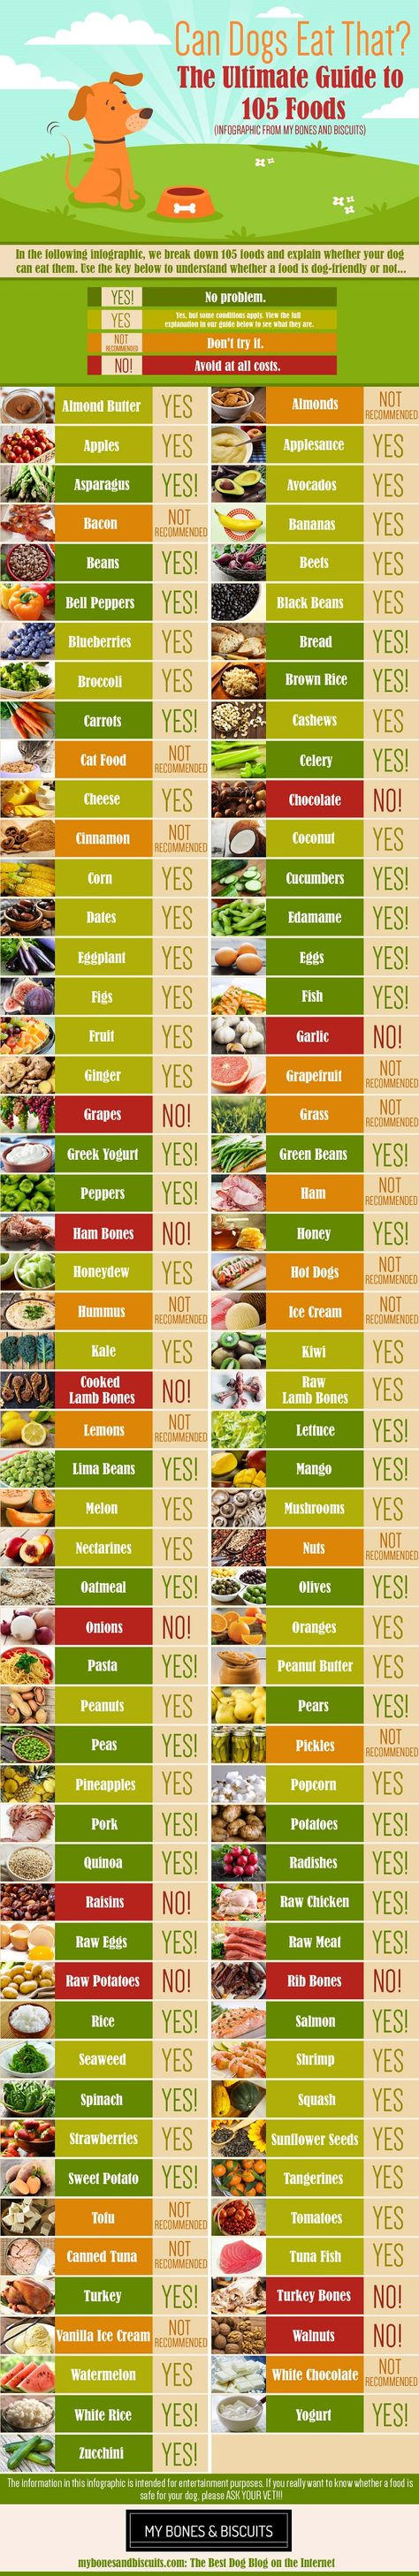 Can Dogs Eat This? EPIC Guide to 105 Foods | Apples Bananas Grapes Berries Watermelon | My Bones  Biscuits